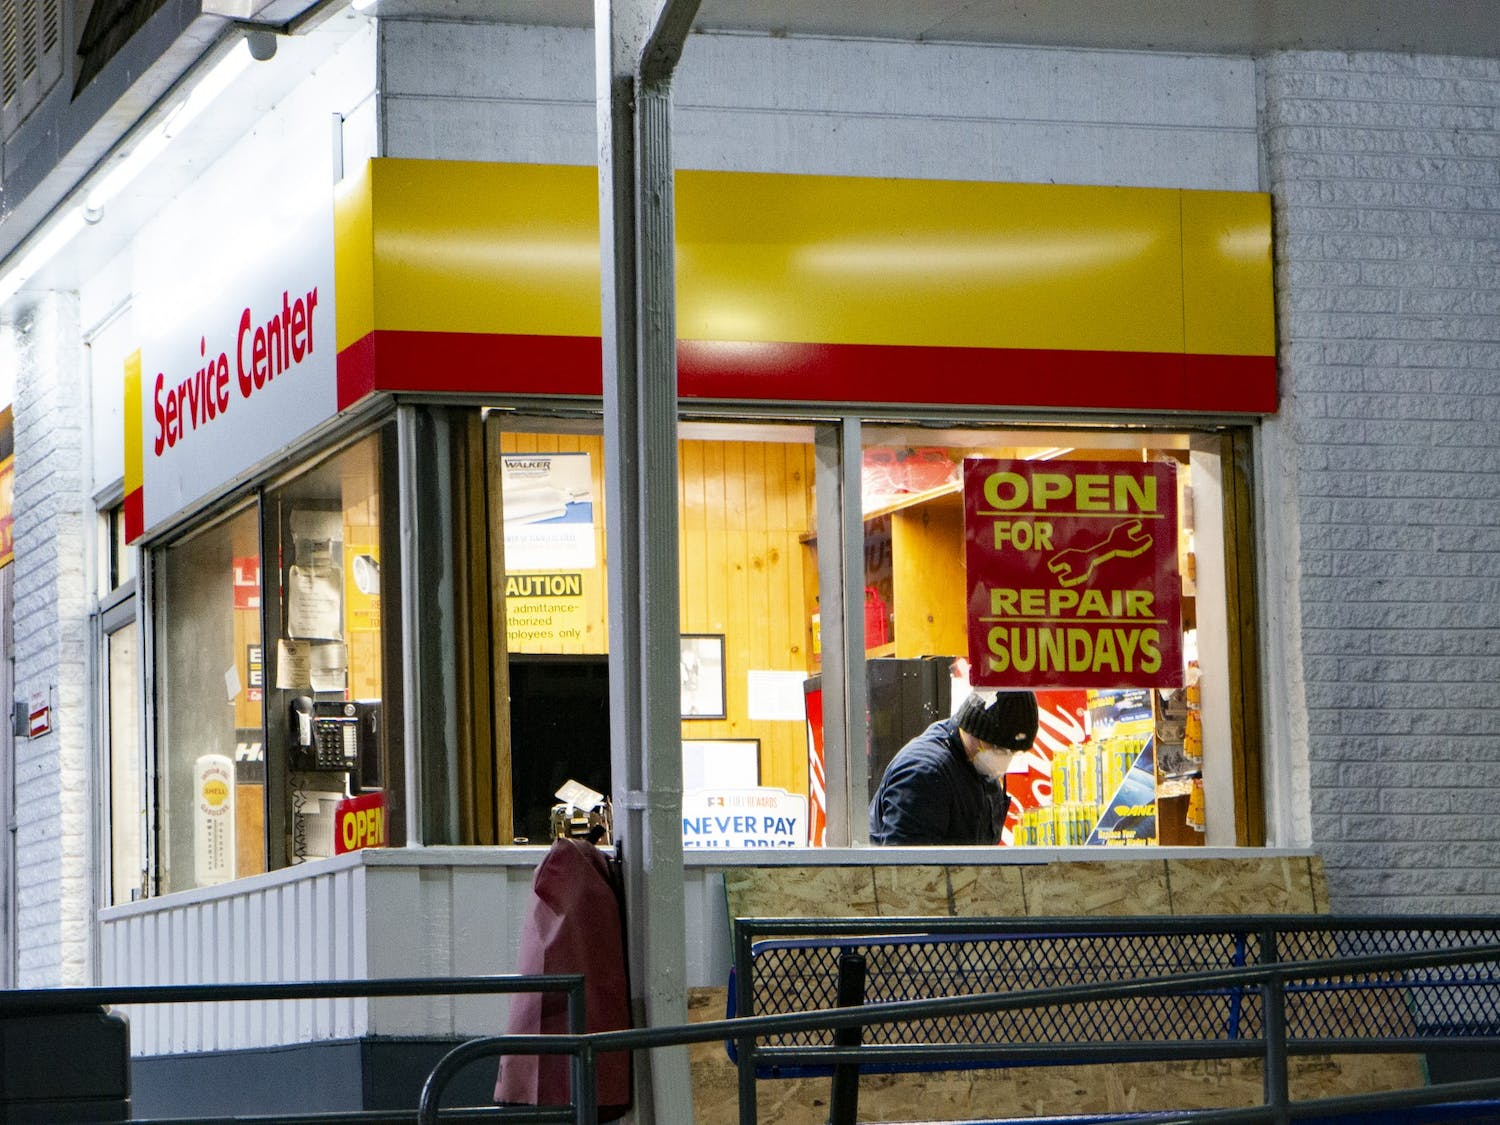 An employee deemed an essential worker during the COVID-19 pandemic works at a gas station in Evanston, Illinois on Monday, Mar. 23, 2020.